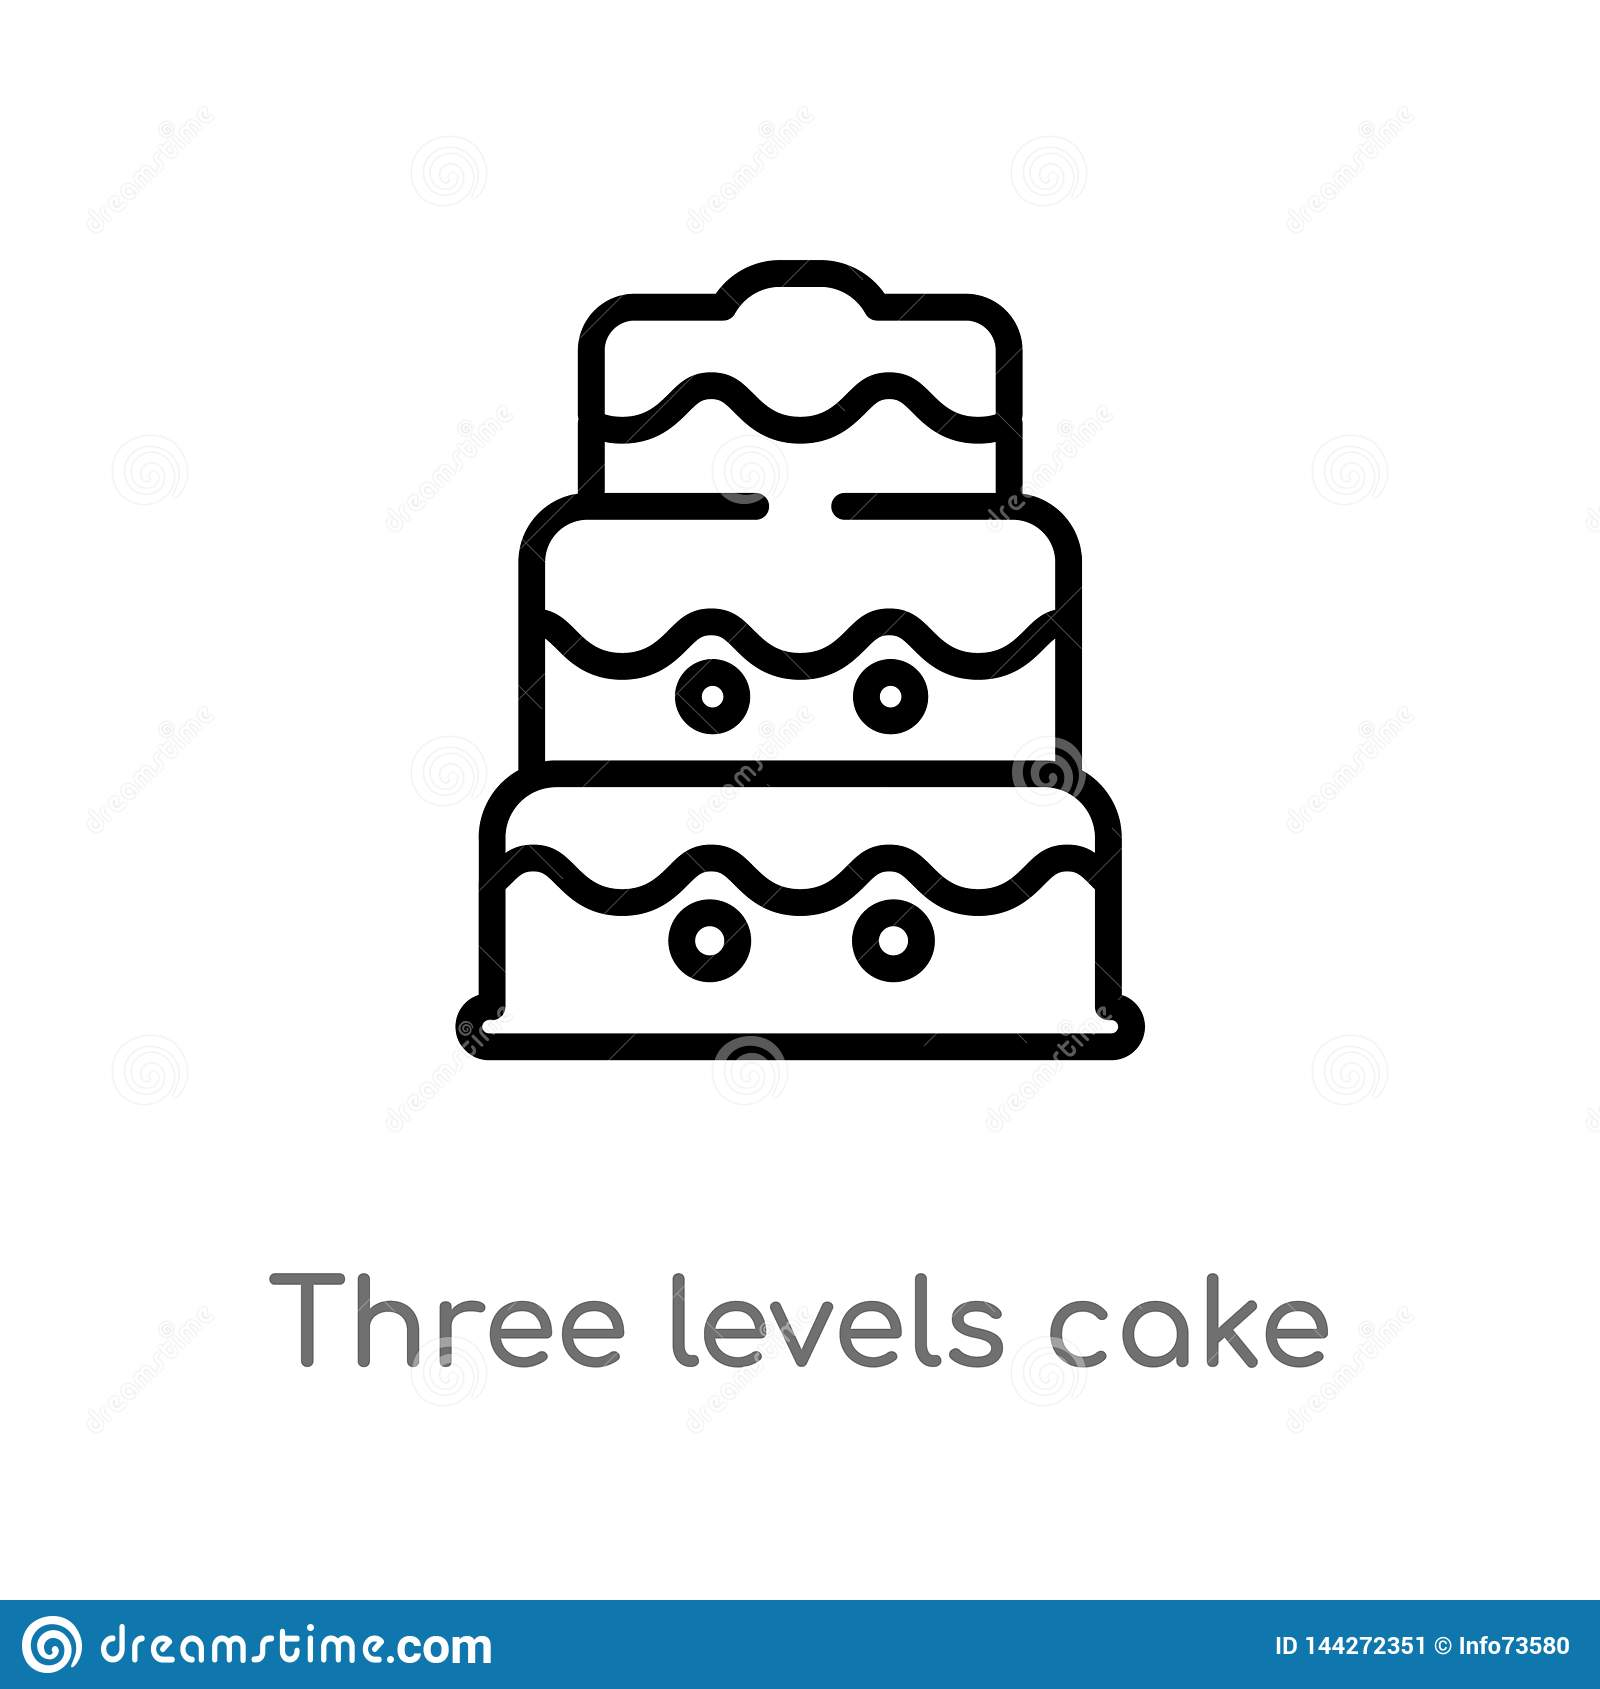 outline three levels cake vector icon. isolated black simple line element illustration from bistro and restaurant concept.